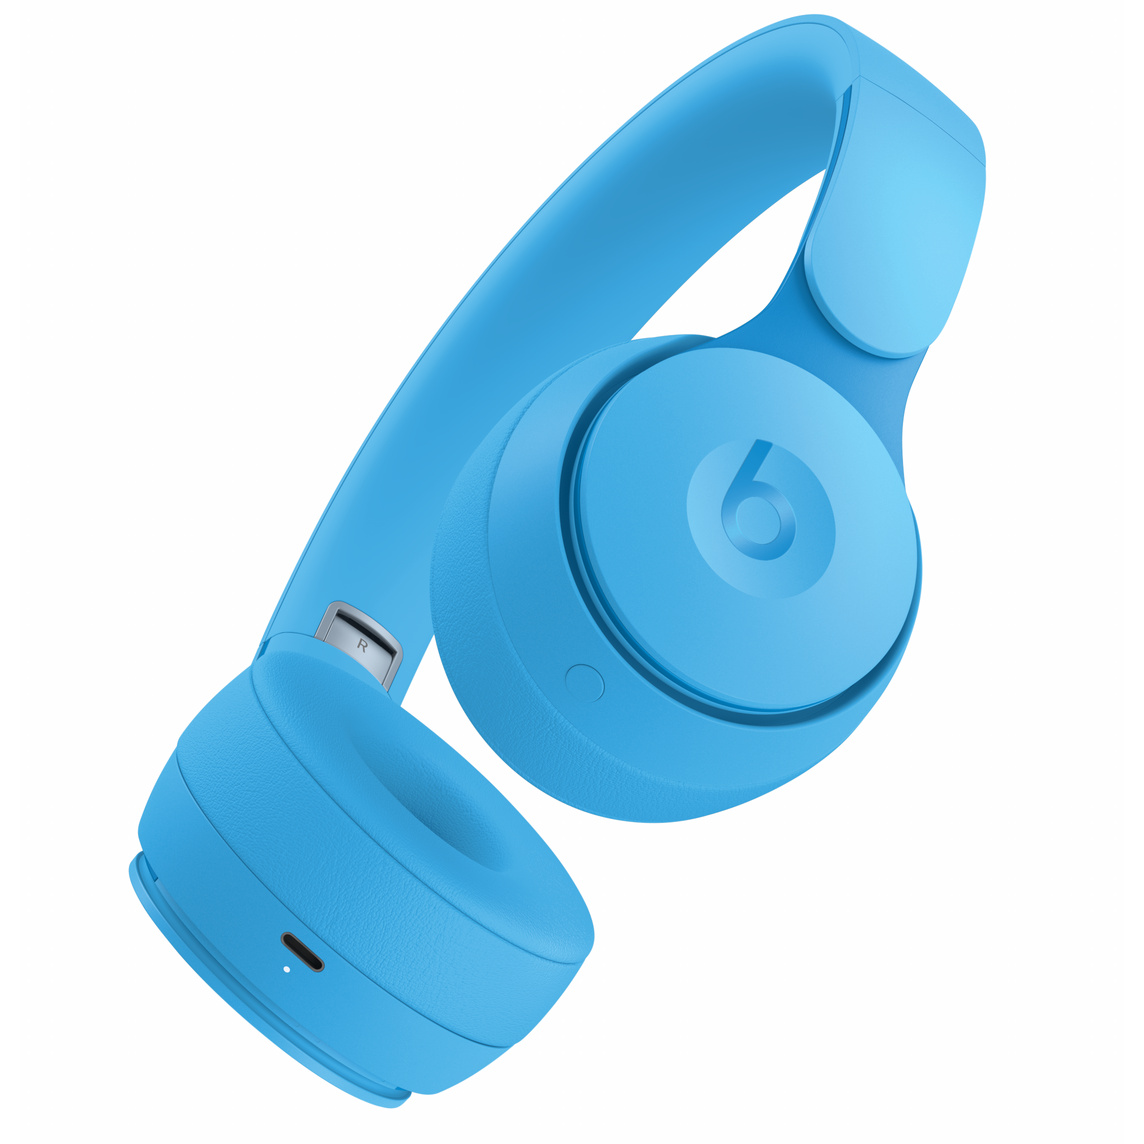 Beats Solo Pro Wireless Noise Cancelling Headphones More Matte Collection Light Blue Apple